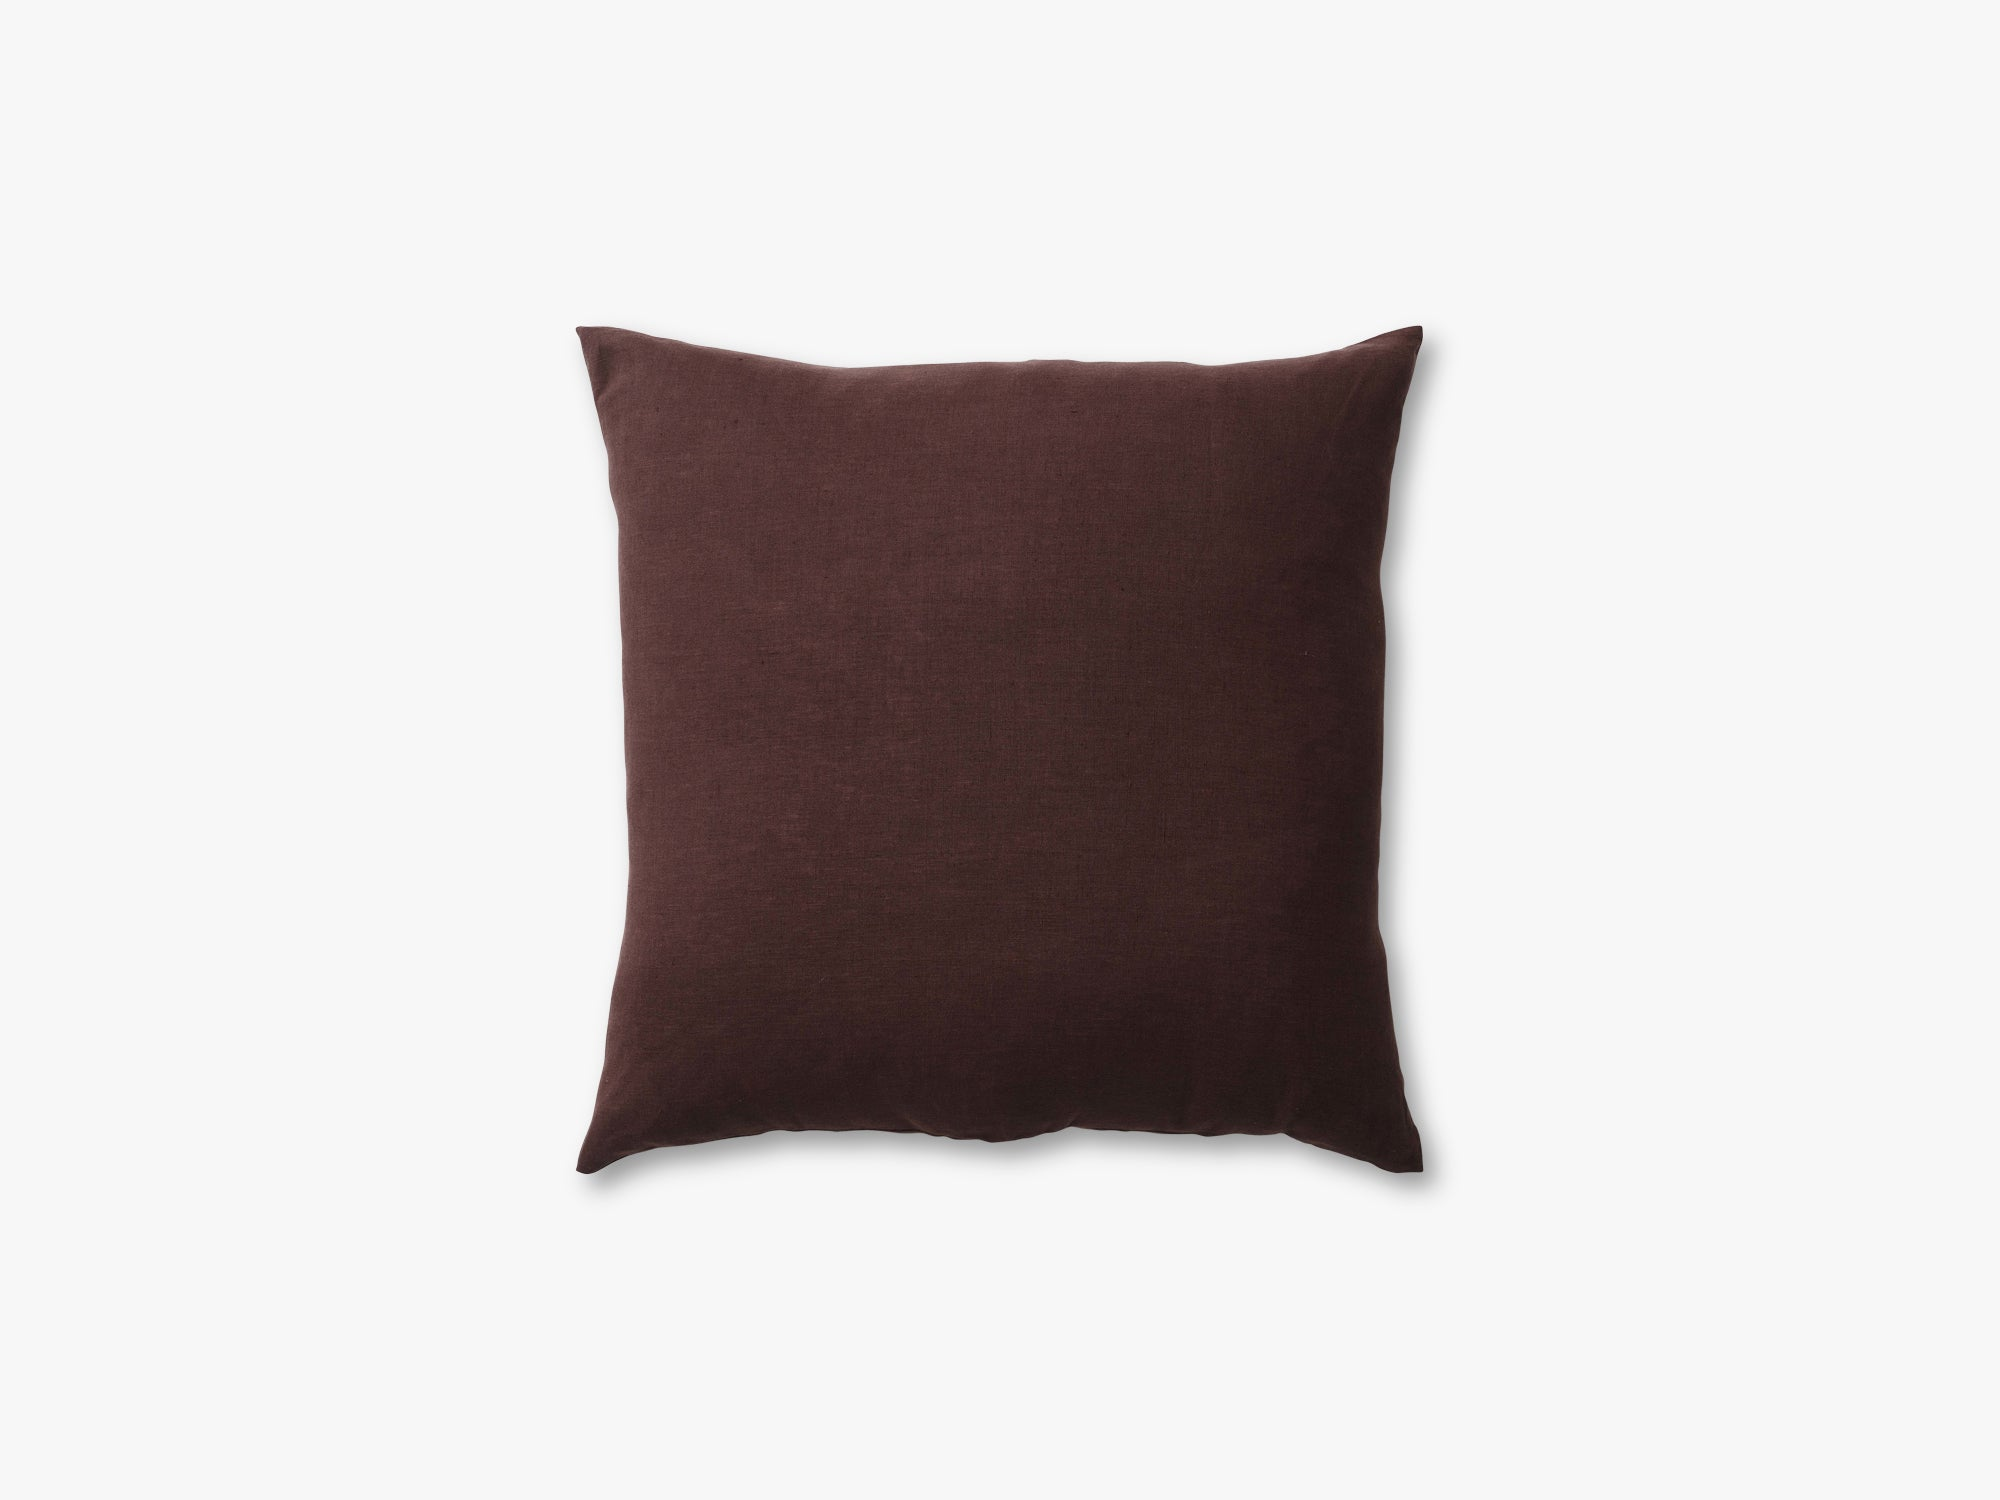 Collect Cushion SC29 - 65x65, Burgundy Linen fra &tradition